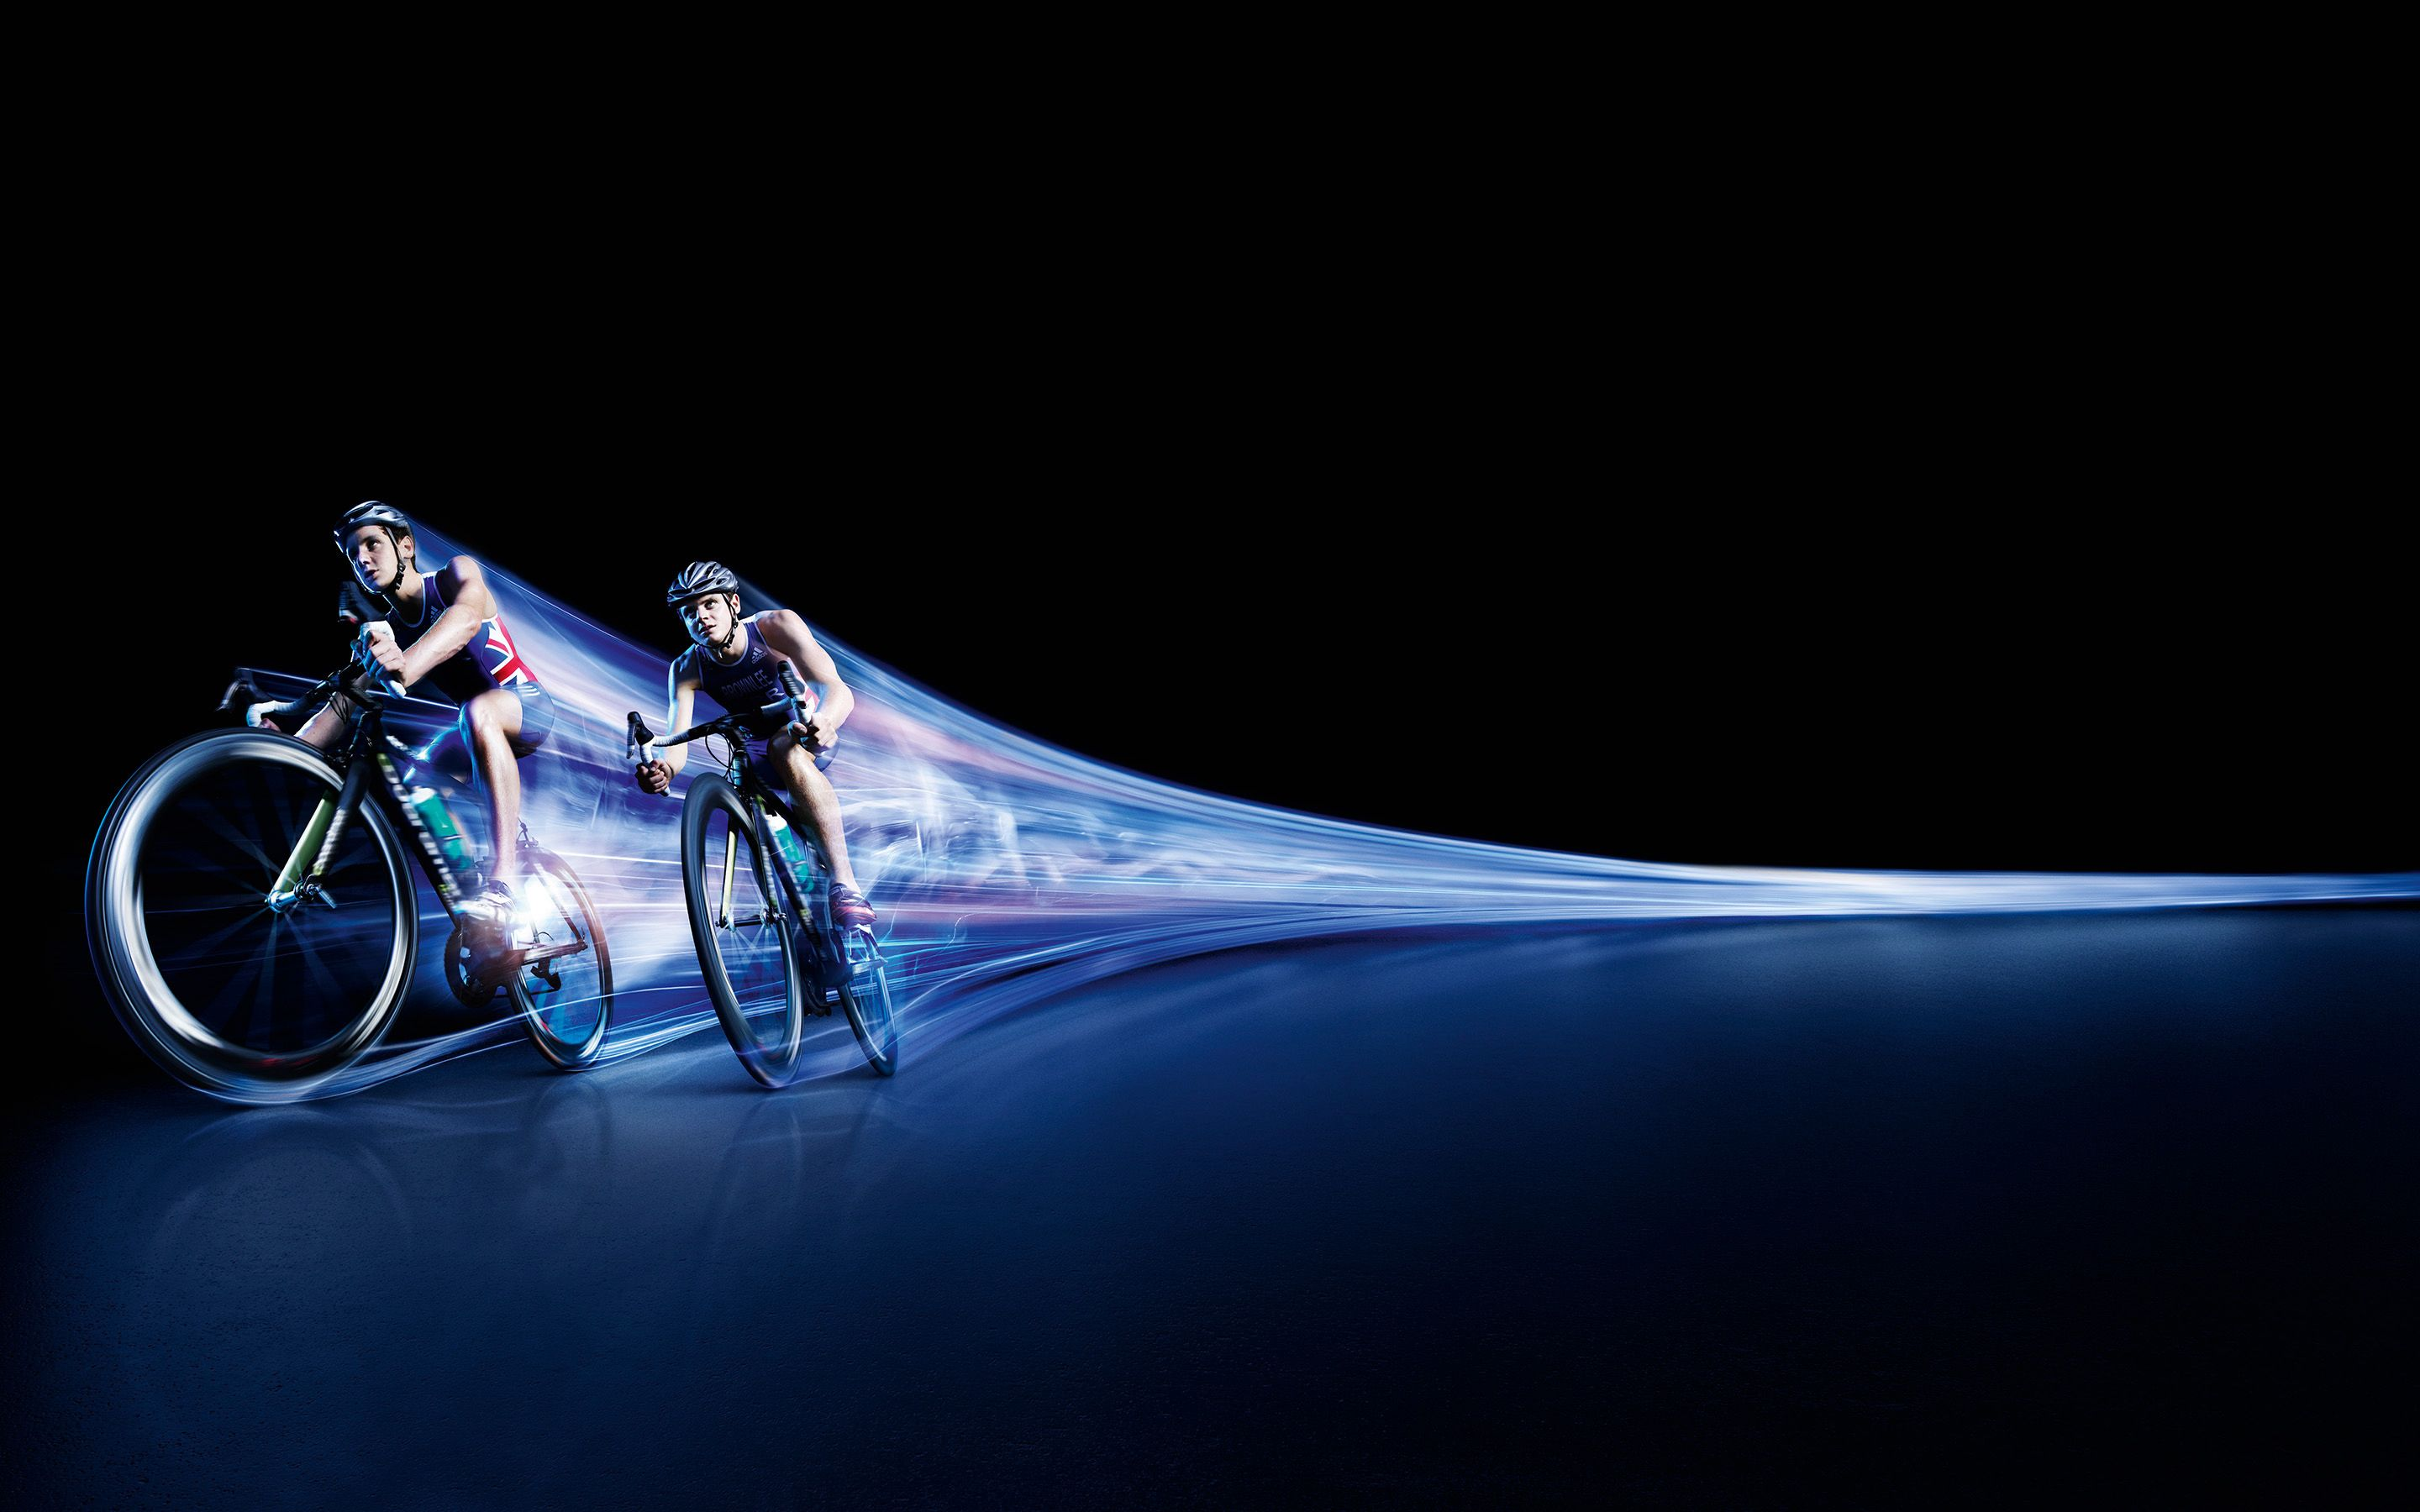 Triathletes in 2020 Sports wallpapers, Cycling pictures